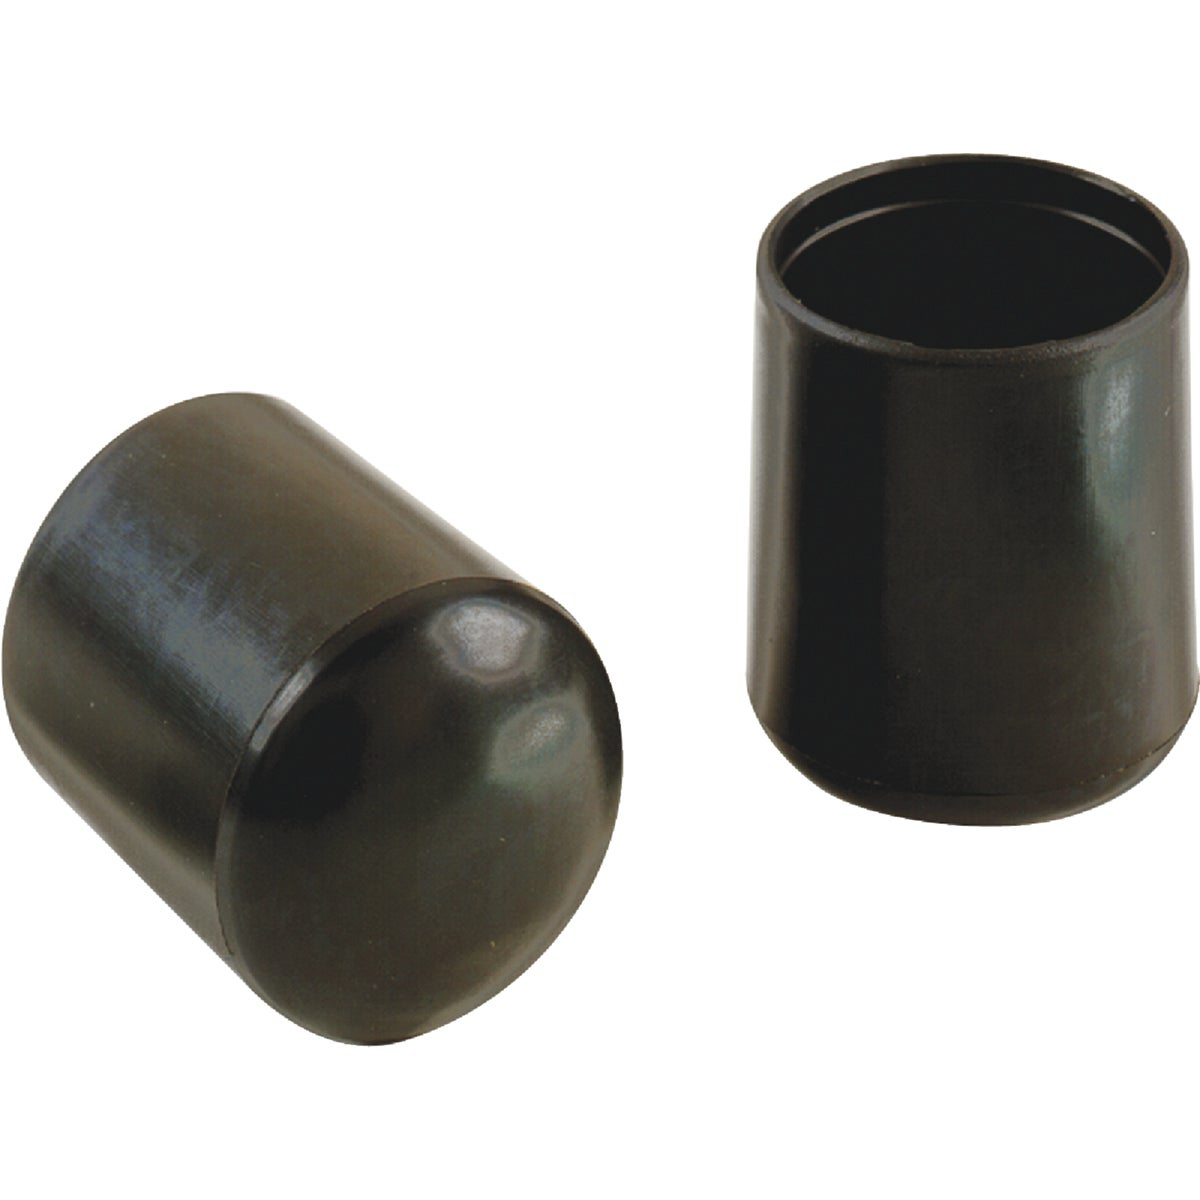 "1"" BLACK VINYL LEG TIP - 209481 by Shepherd Hardware"